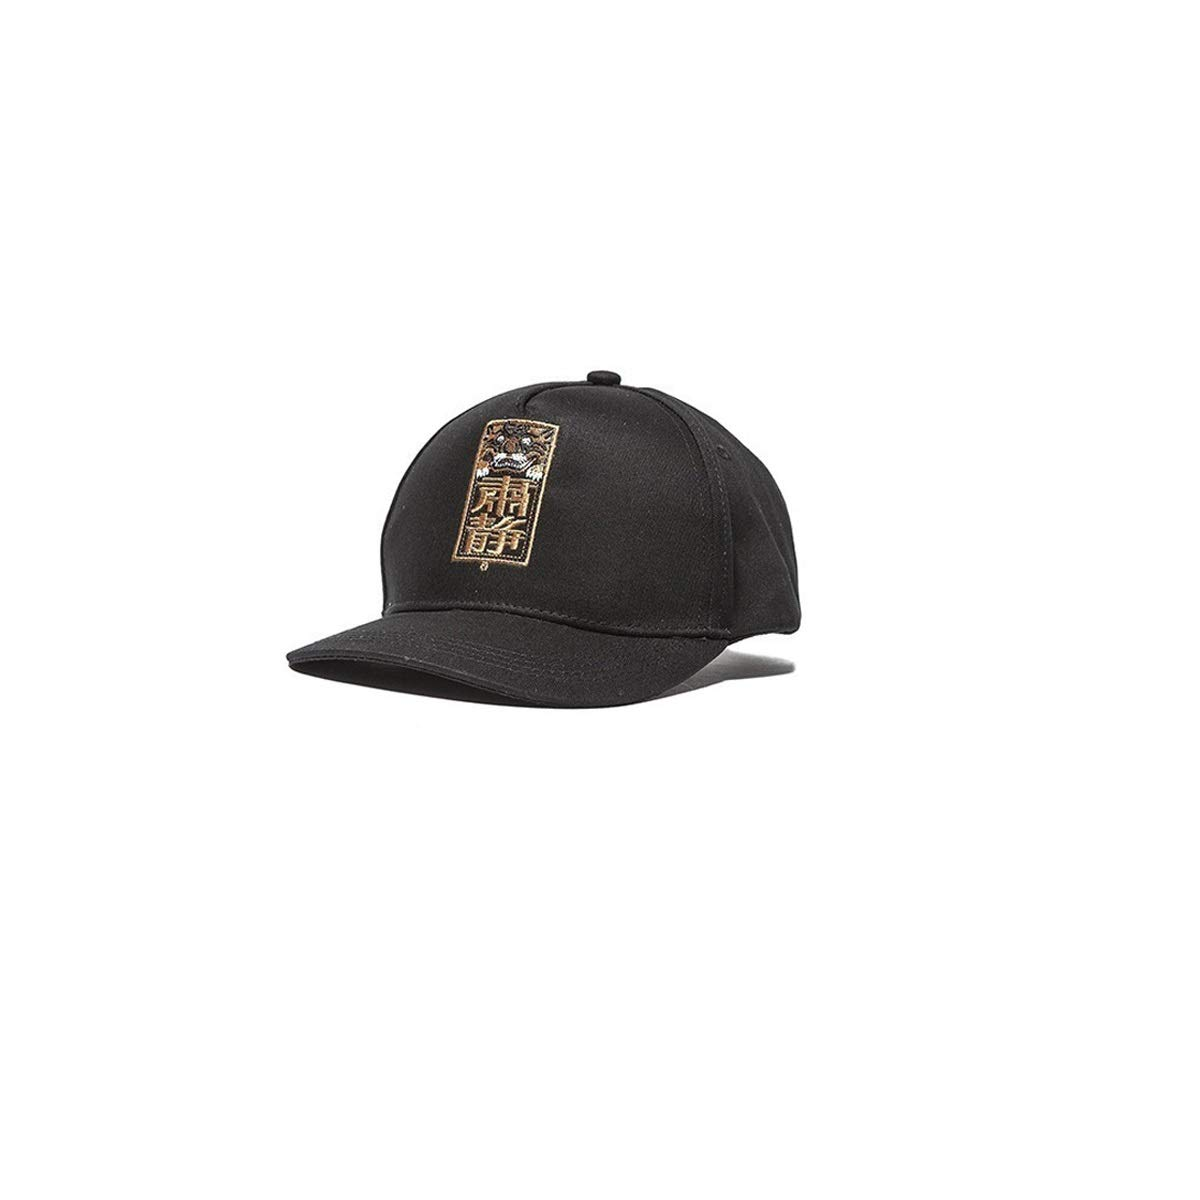 Zhongyue Chinese Style With Chinese Characters, Funny Embroidered Cap, Black, New Leisure, Sunscreen, Cane, Sun, Sunburn, Sun Hat, Black Background, Black Bottom, Black Faucet, Black Bottom Red Summer